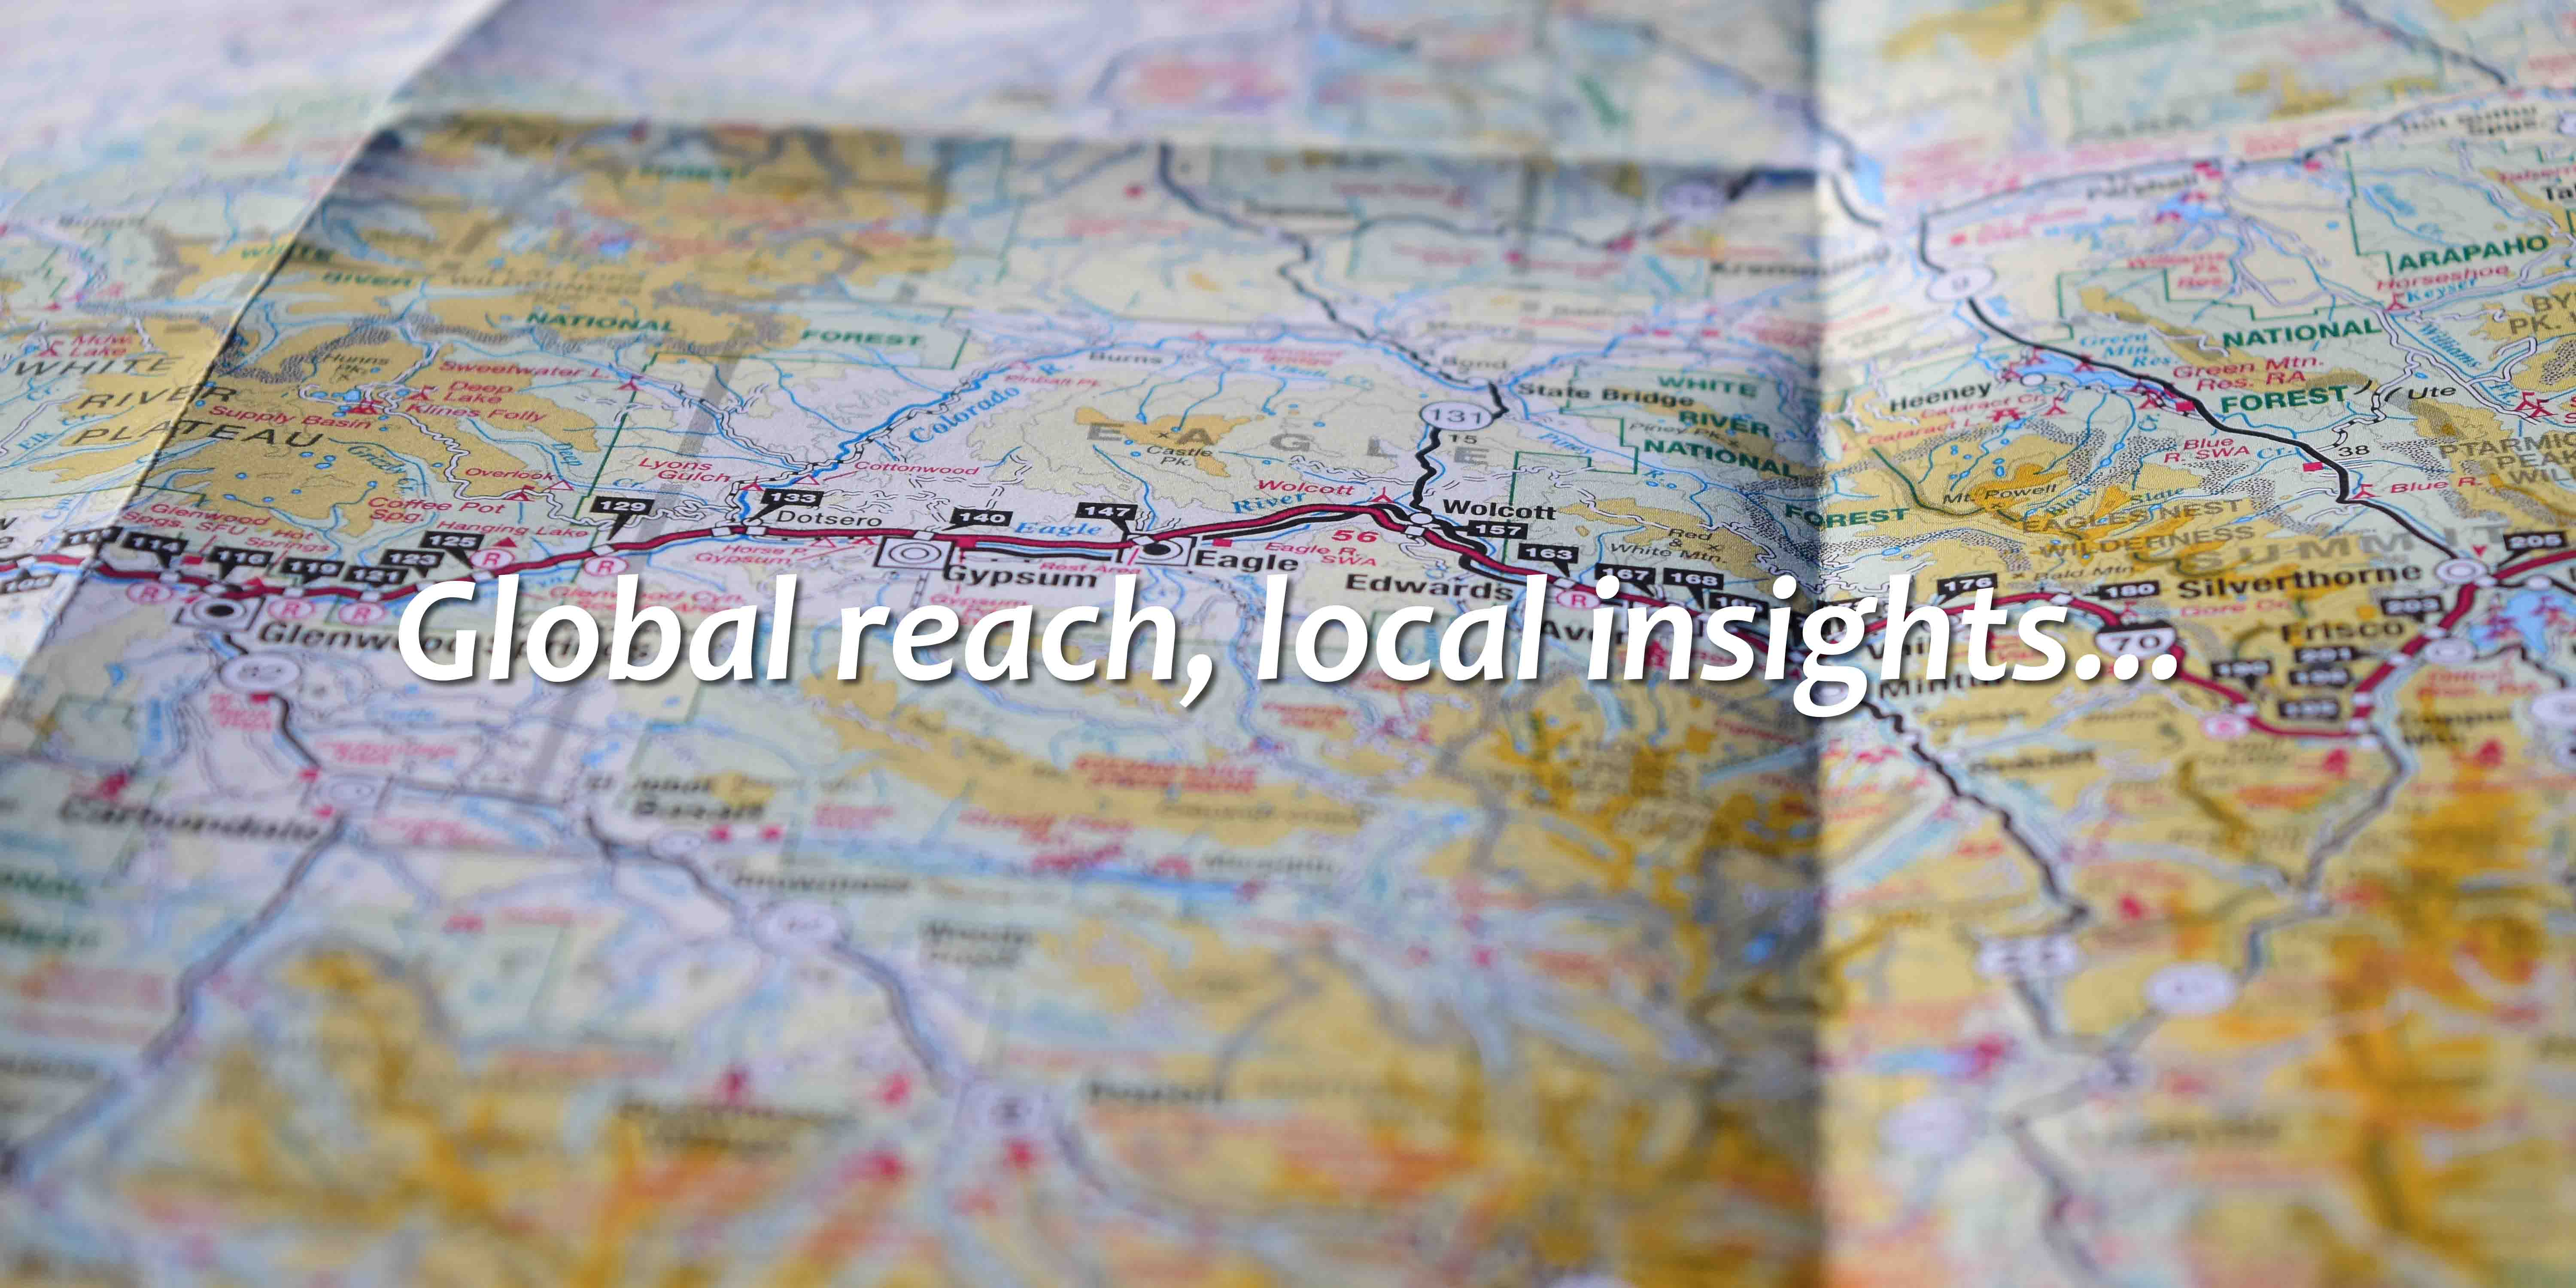 Global reach, local insights..